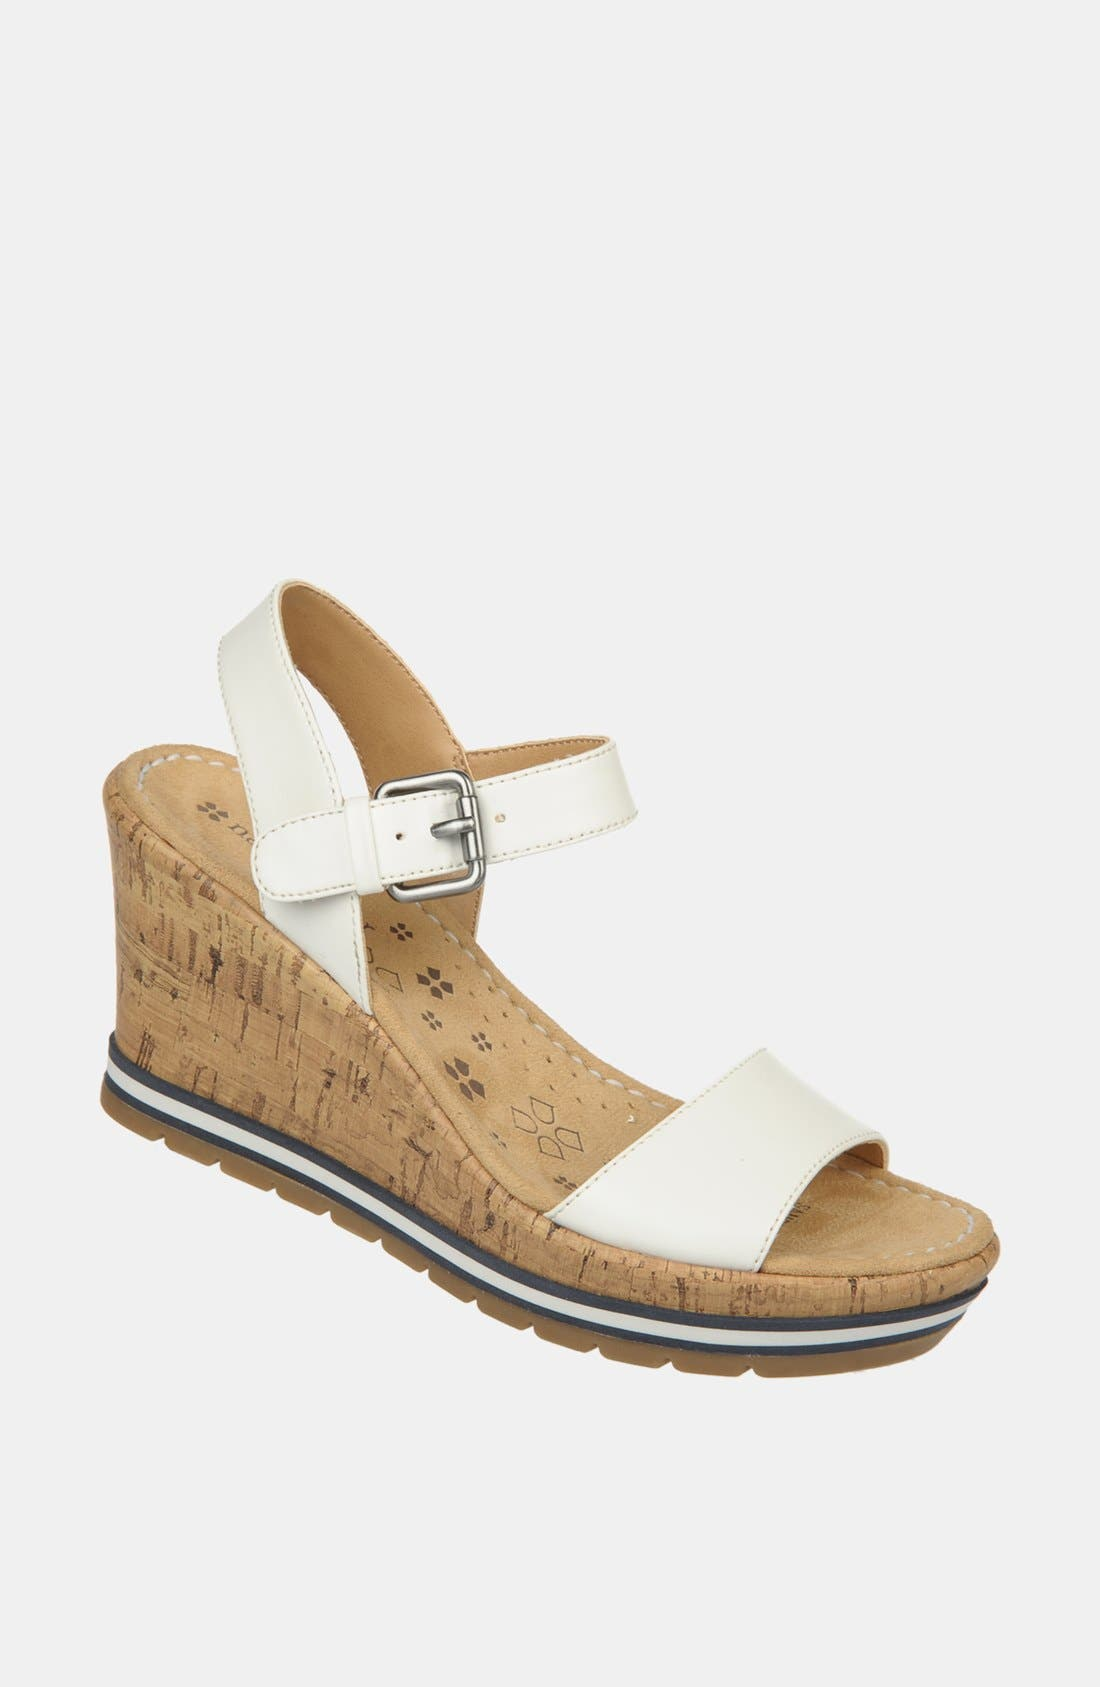 Alternate Image 1 Selected - Naturalizer 'Norton' Sandal